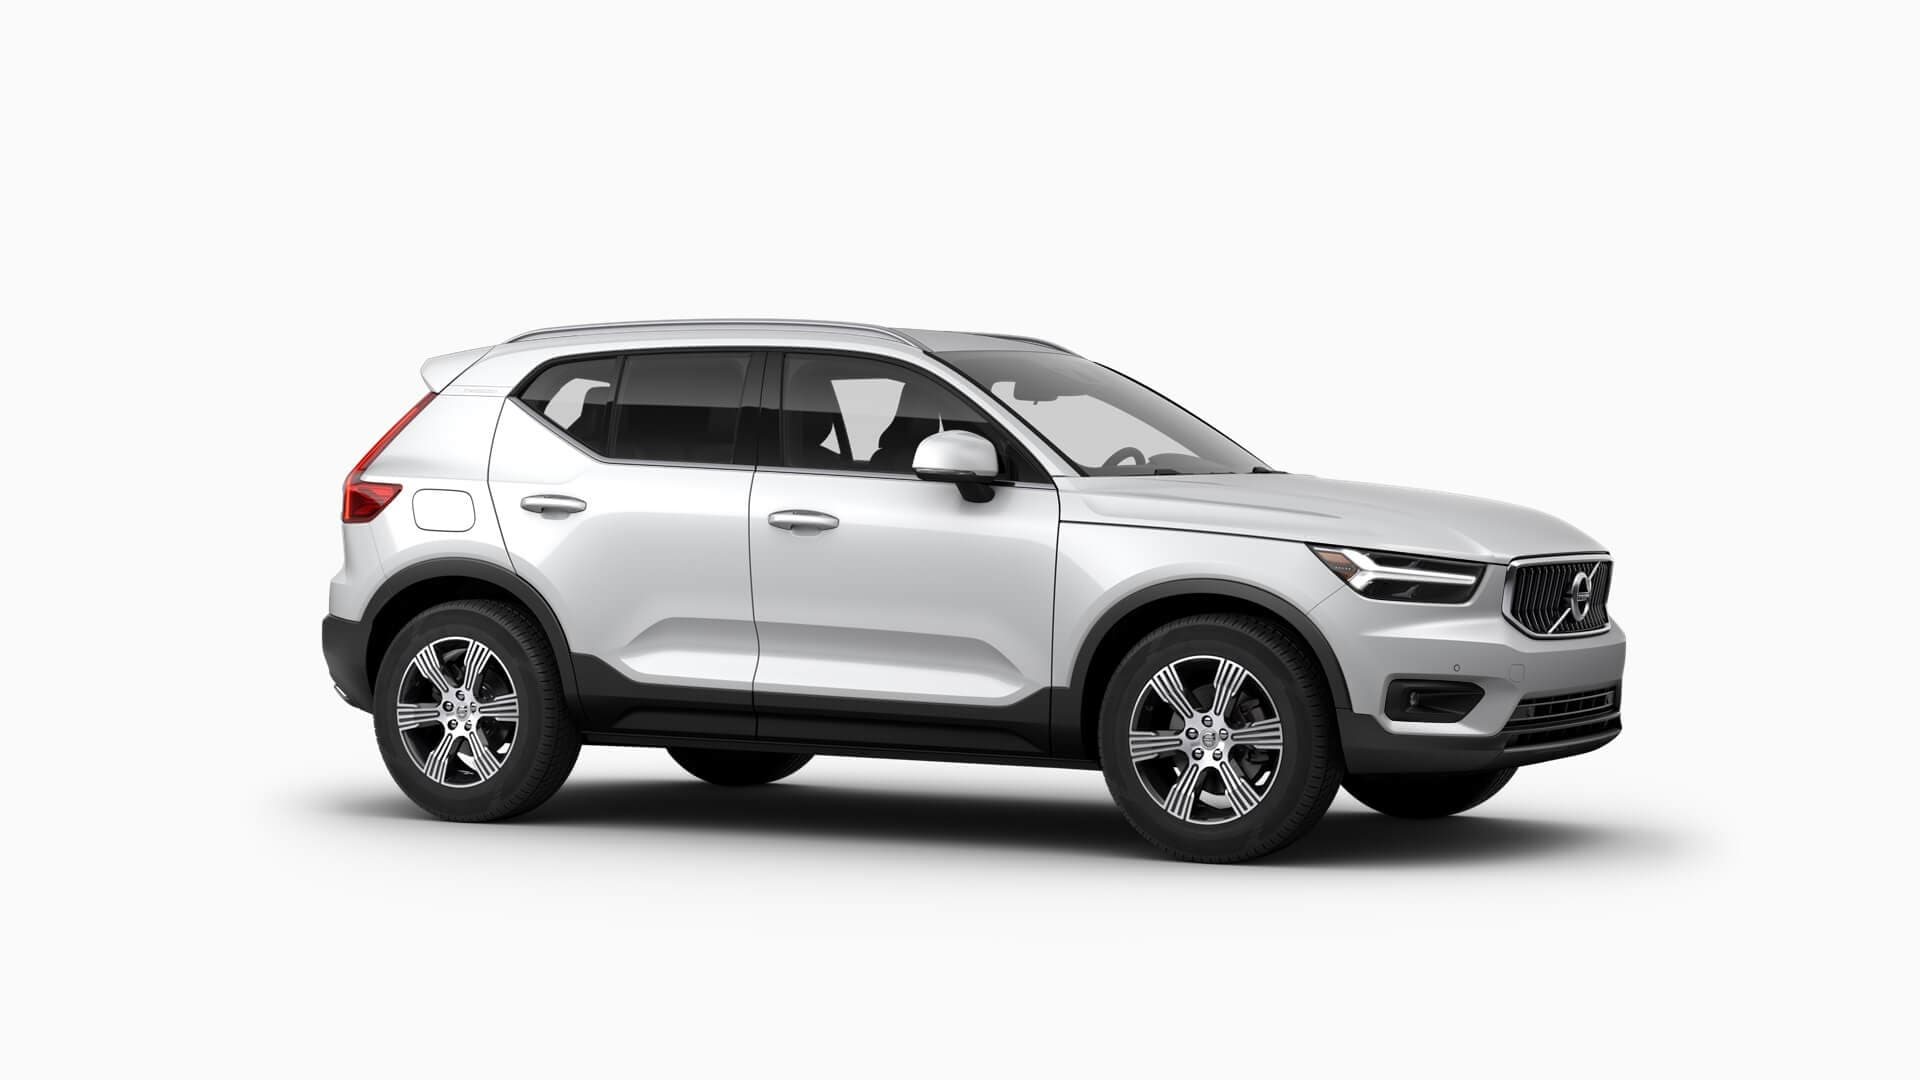 White 2019 Volvo XC40 Inscription exterior view